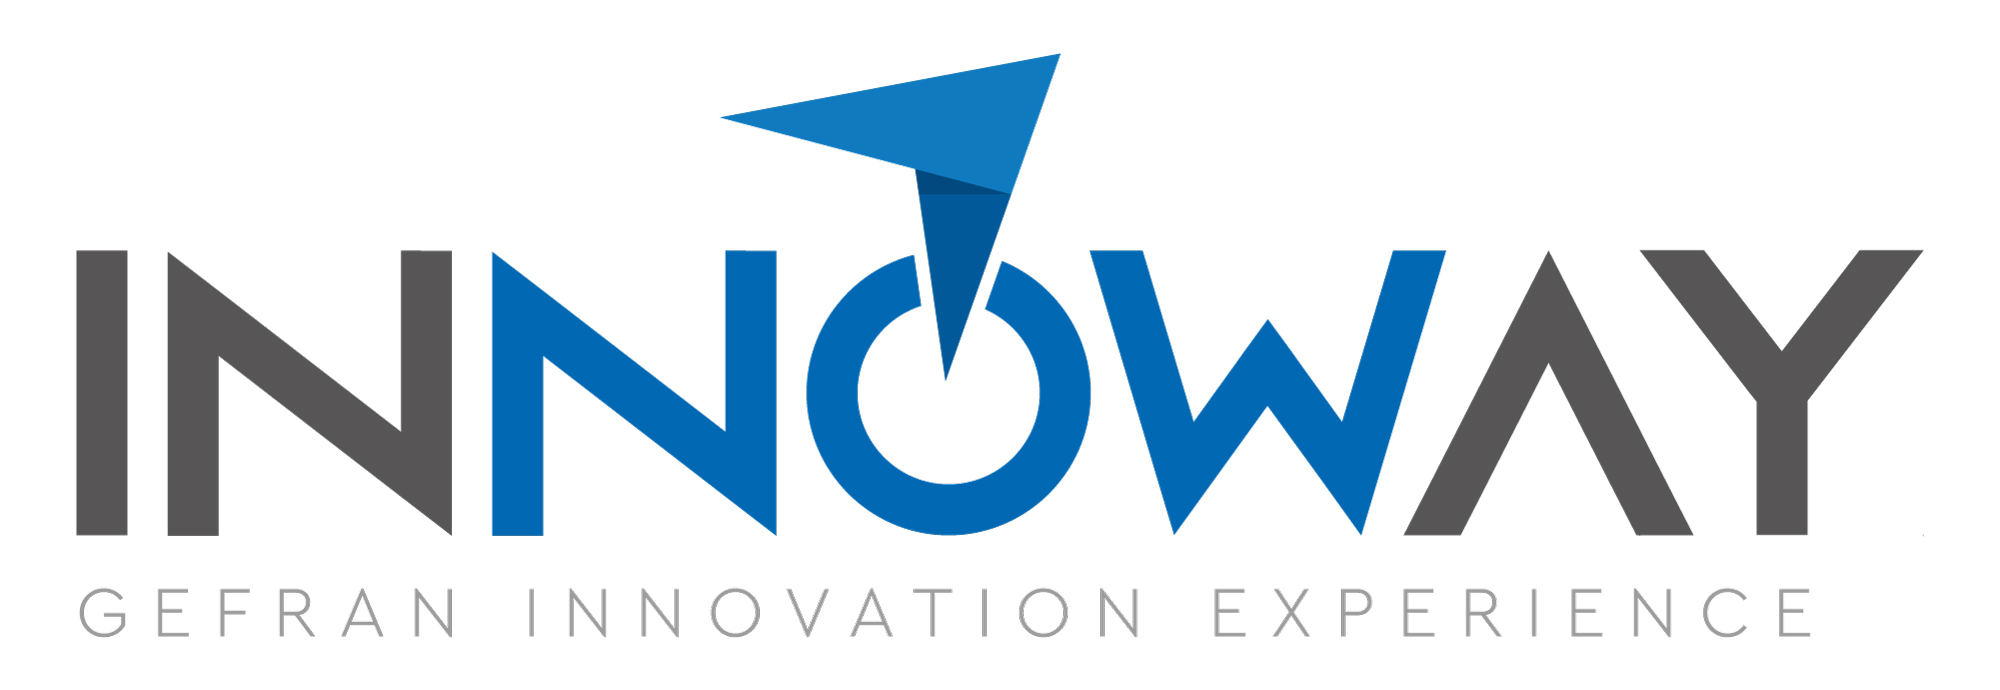 Gefran presents innoway, An innovation experience for the academic world